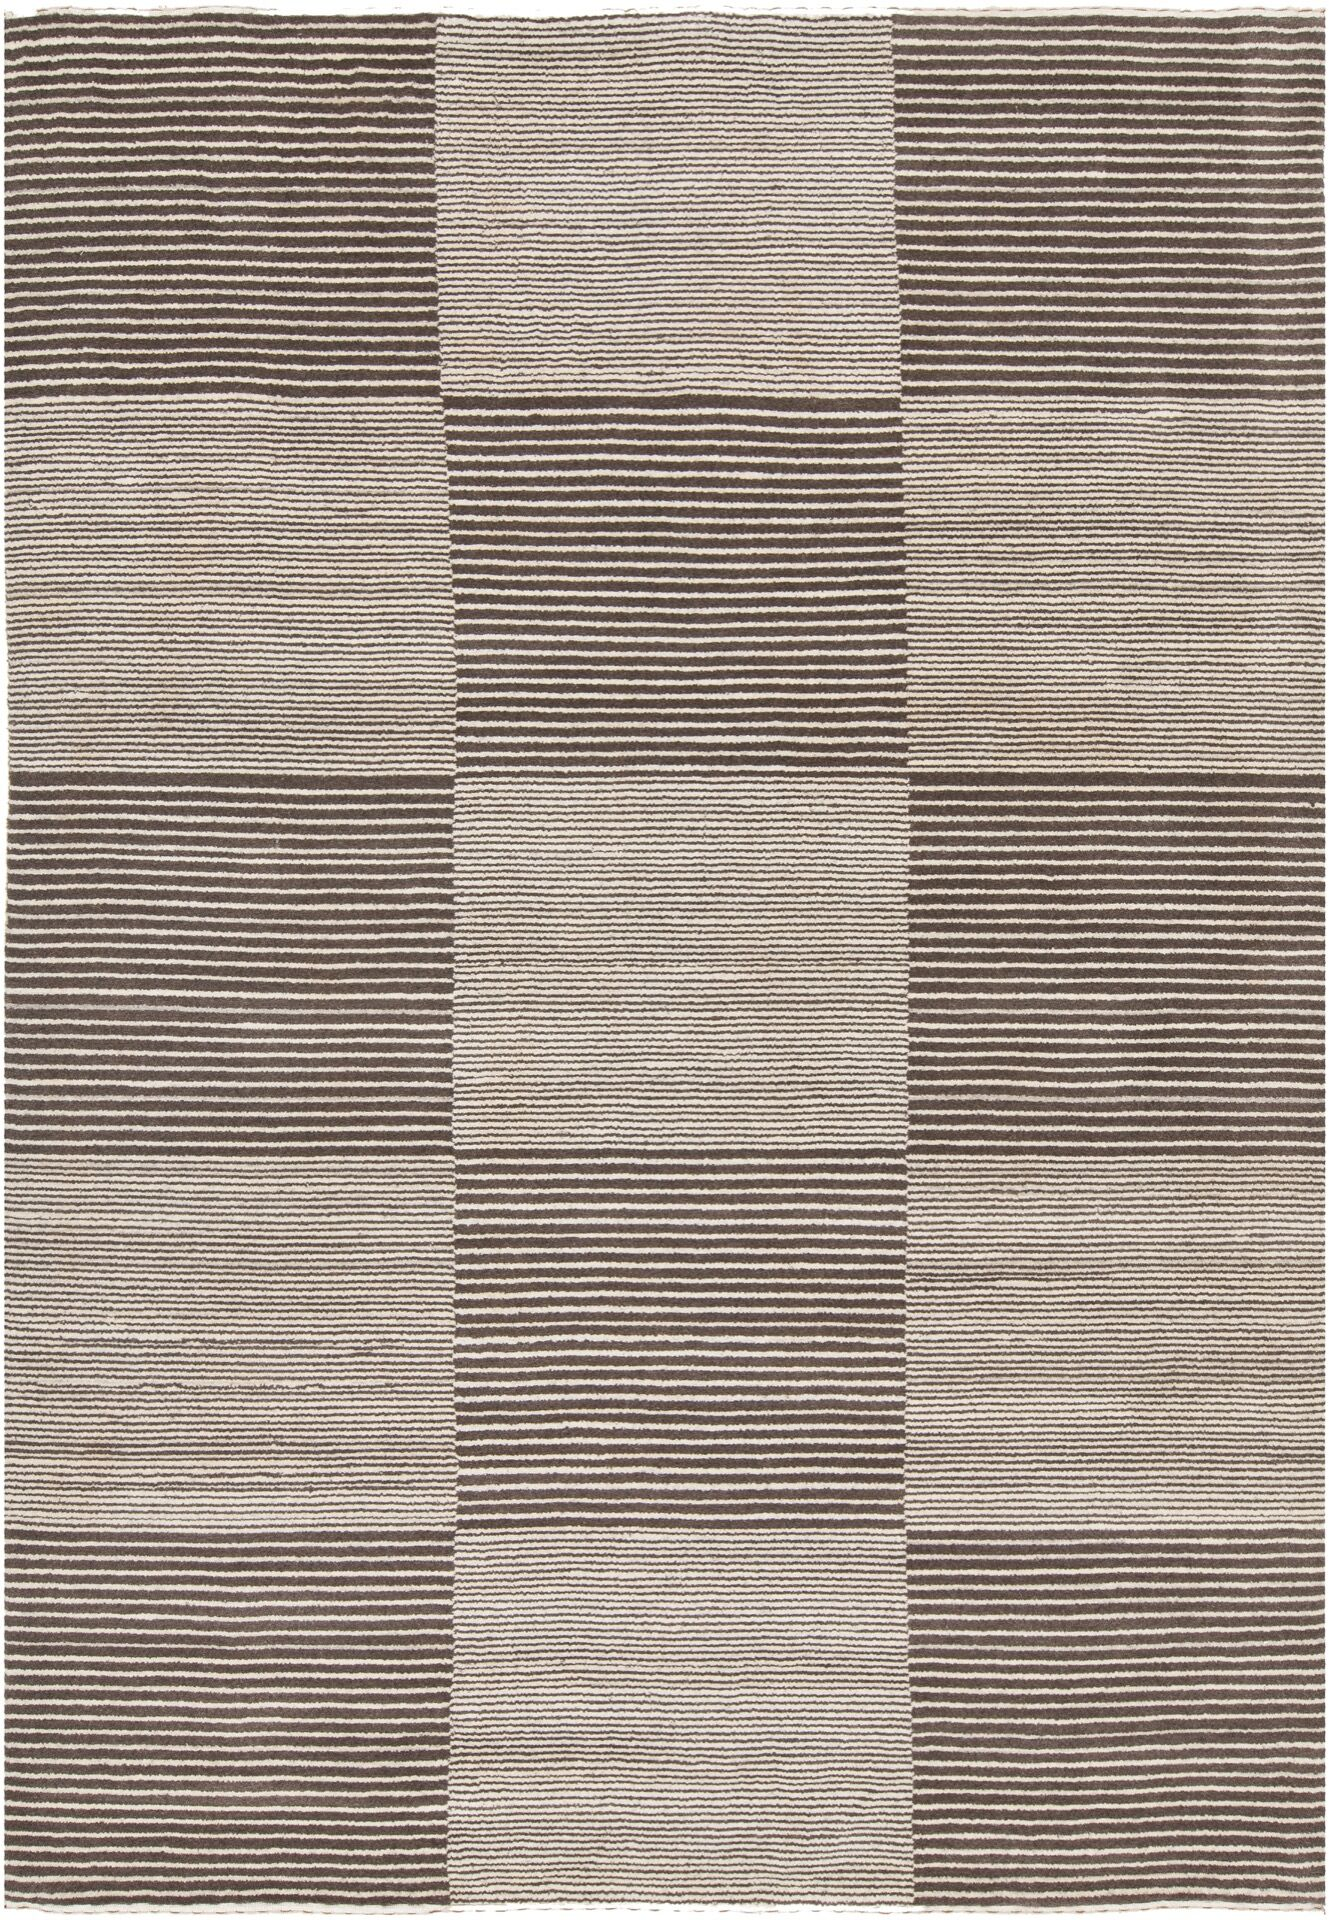 Roxanne Hand-Knotted Cream/Brown Area Rug Rug Size: 9' x 13'